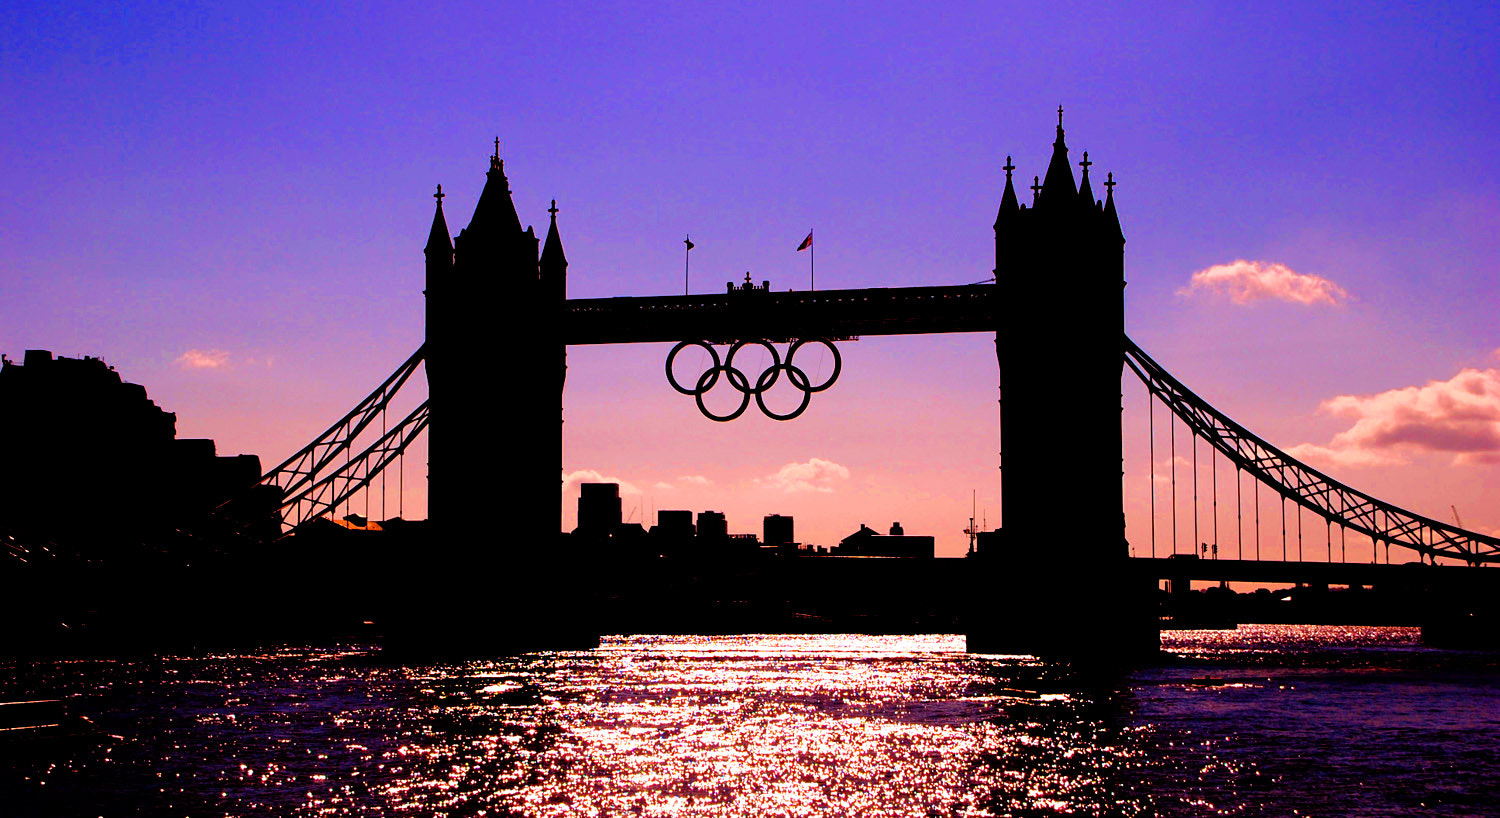 Photograph Tower Bridge with Olympic Rings 2012 by Ashley Carter on 500px